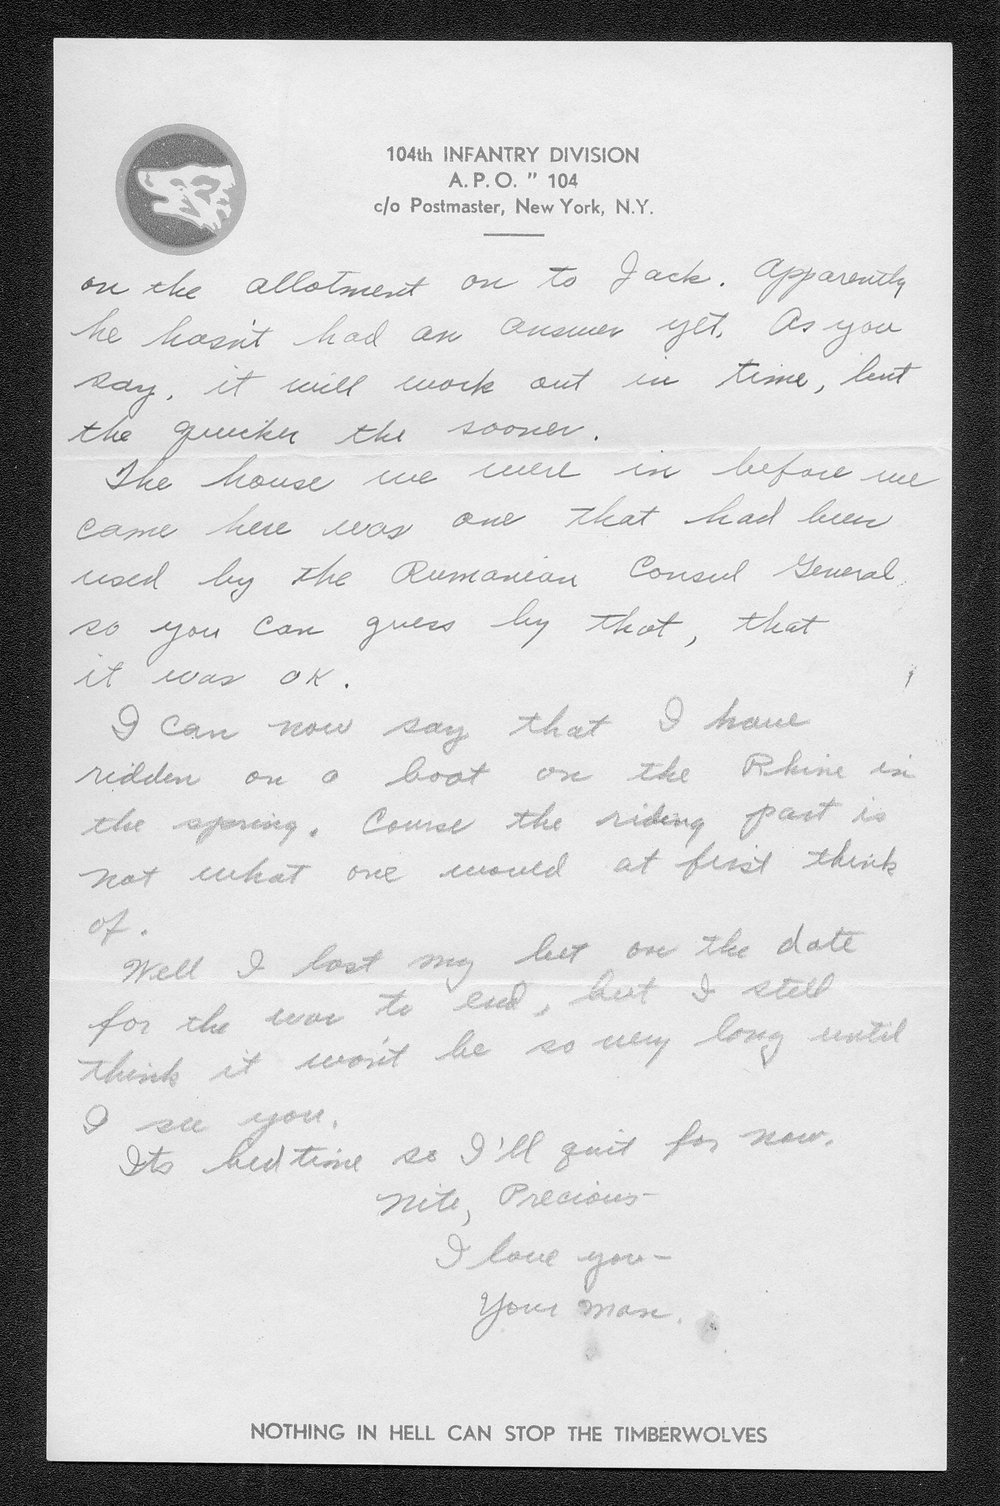 Letters from Hilton Parris Mize to his wife Irene Rosenberger Mize - 9